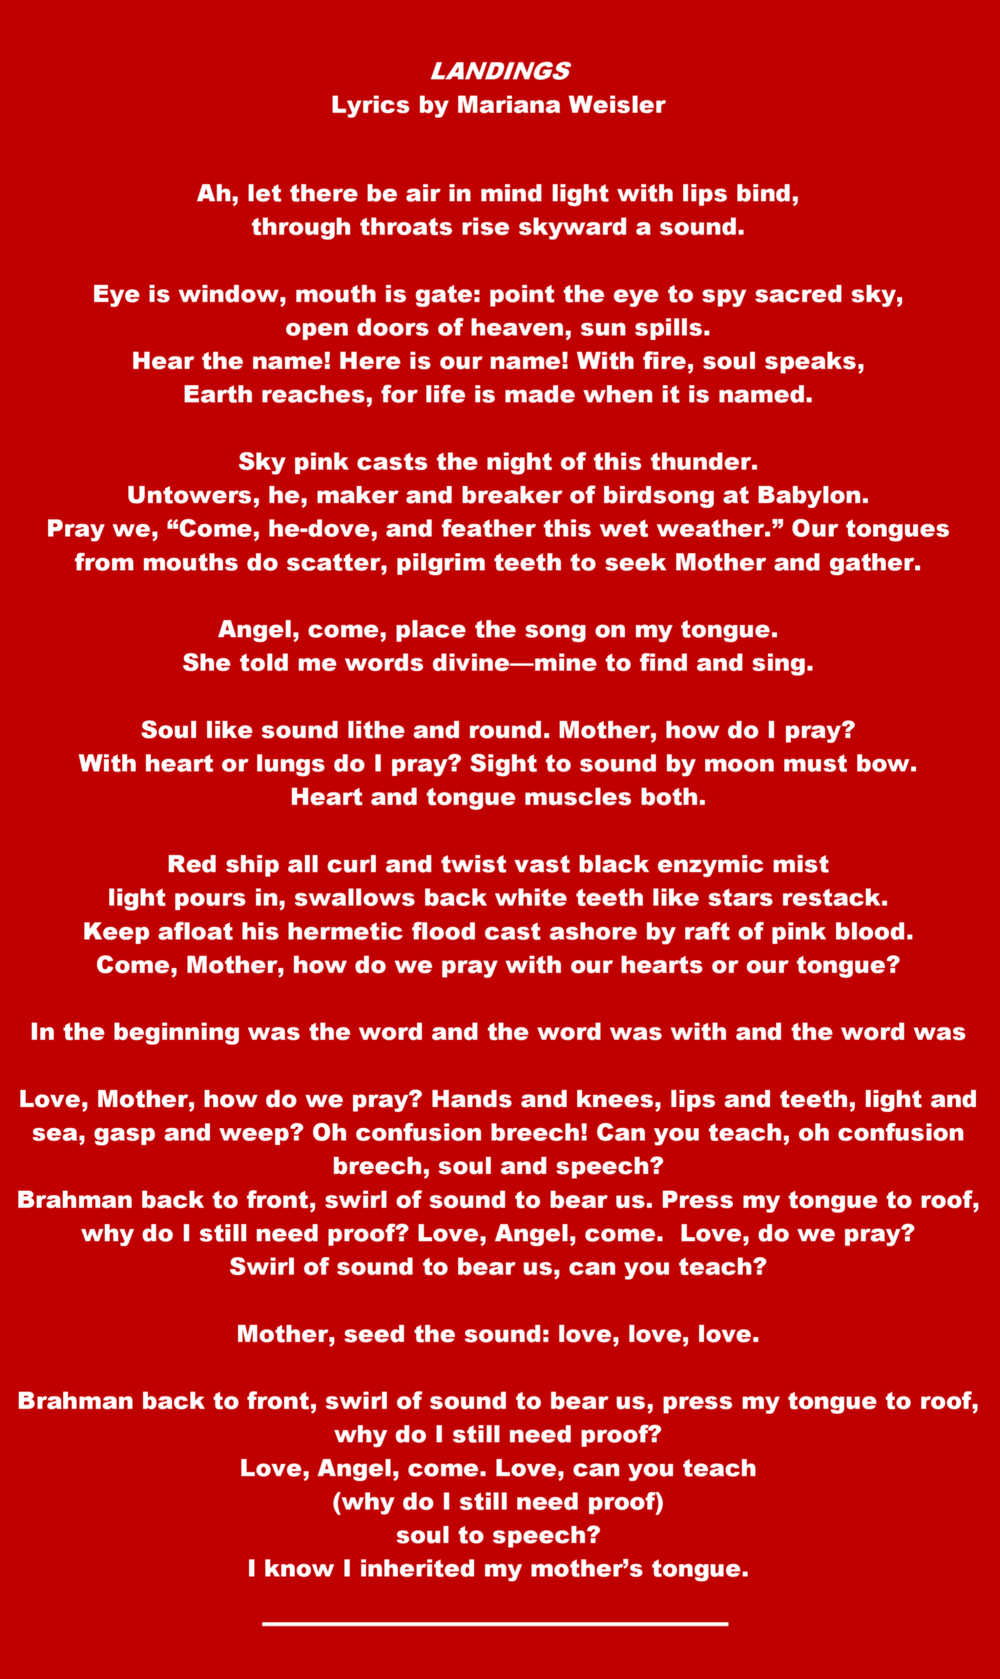 LANDINGS.LYRICS.WEB-0 (2).png